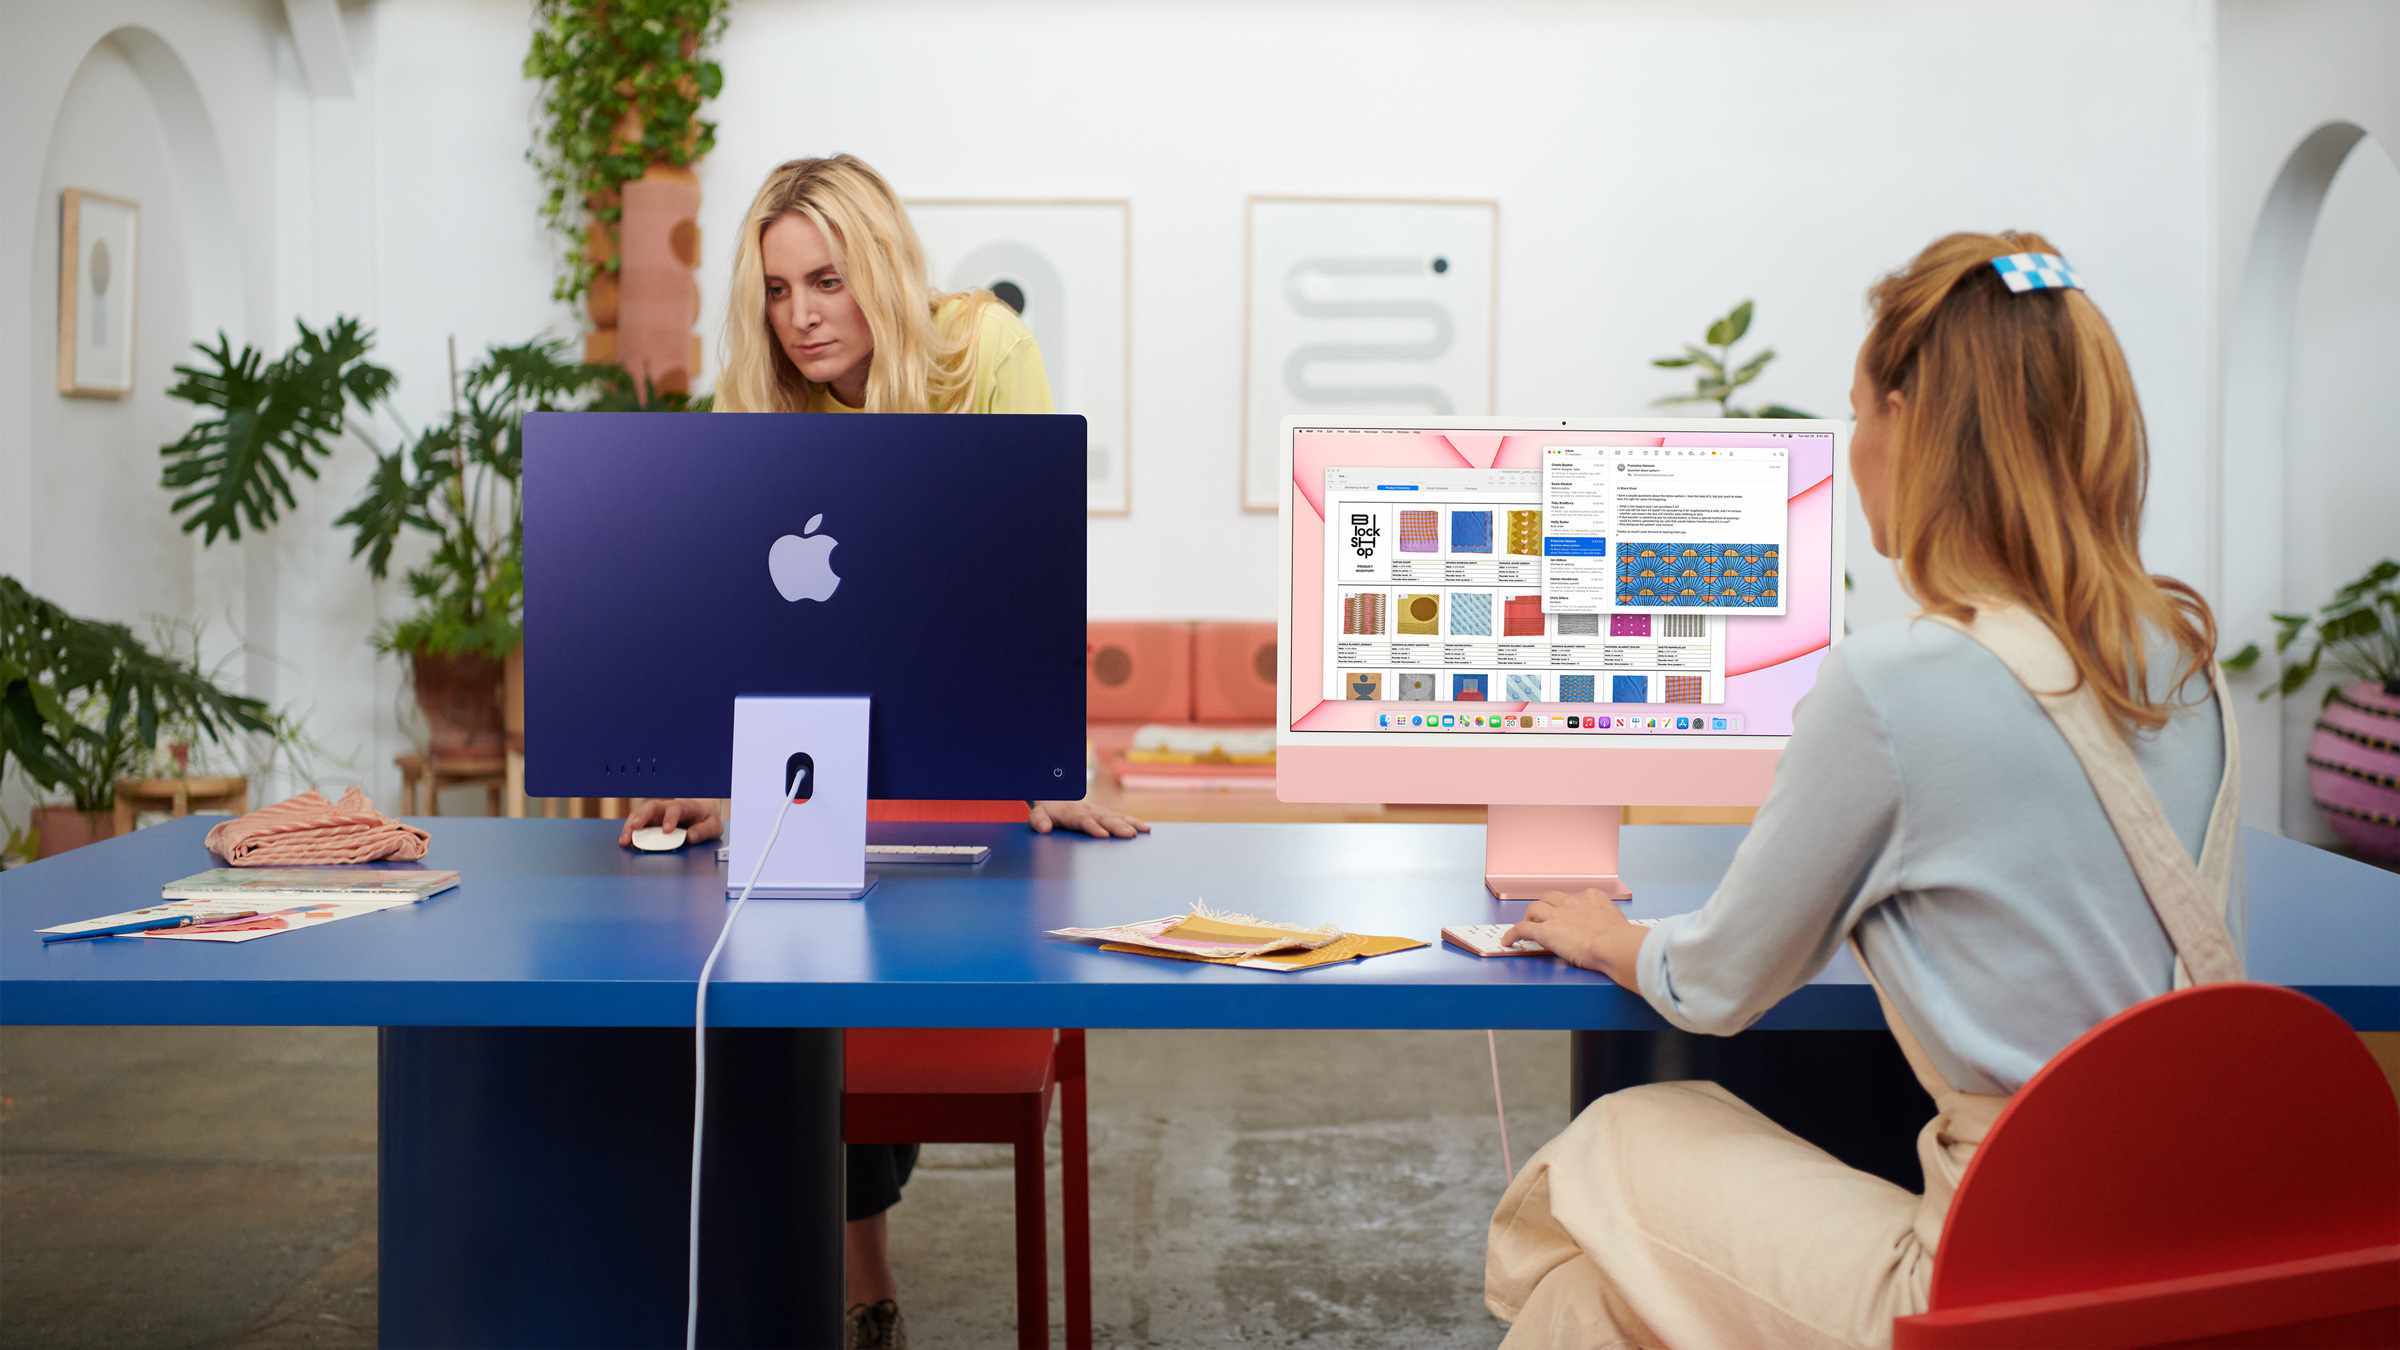 Apple's all new M1 iMac in blue and pink